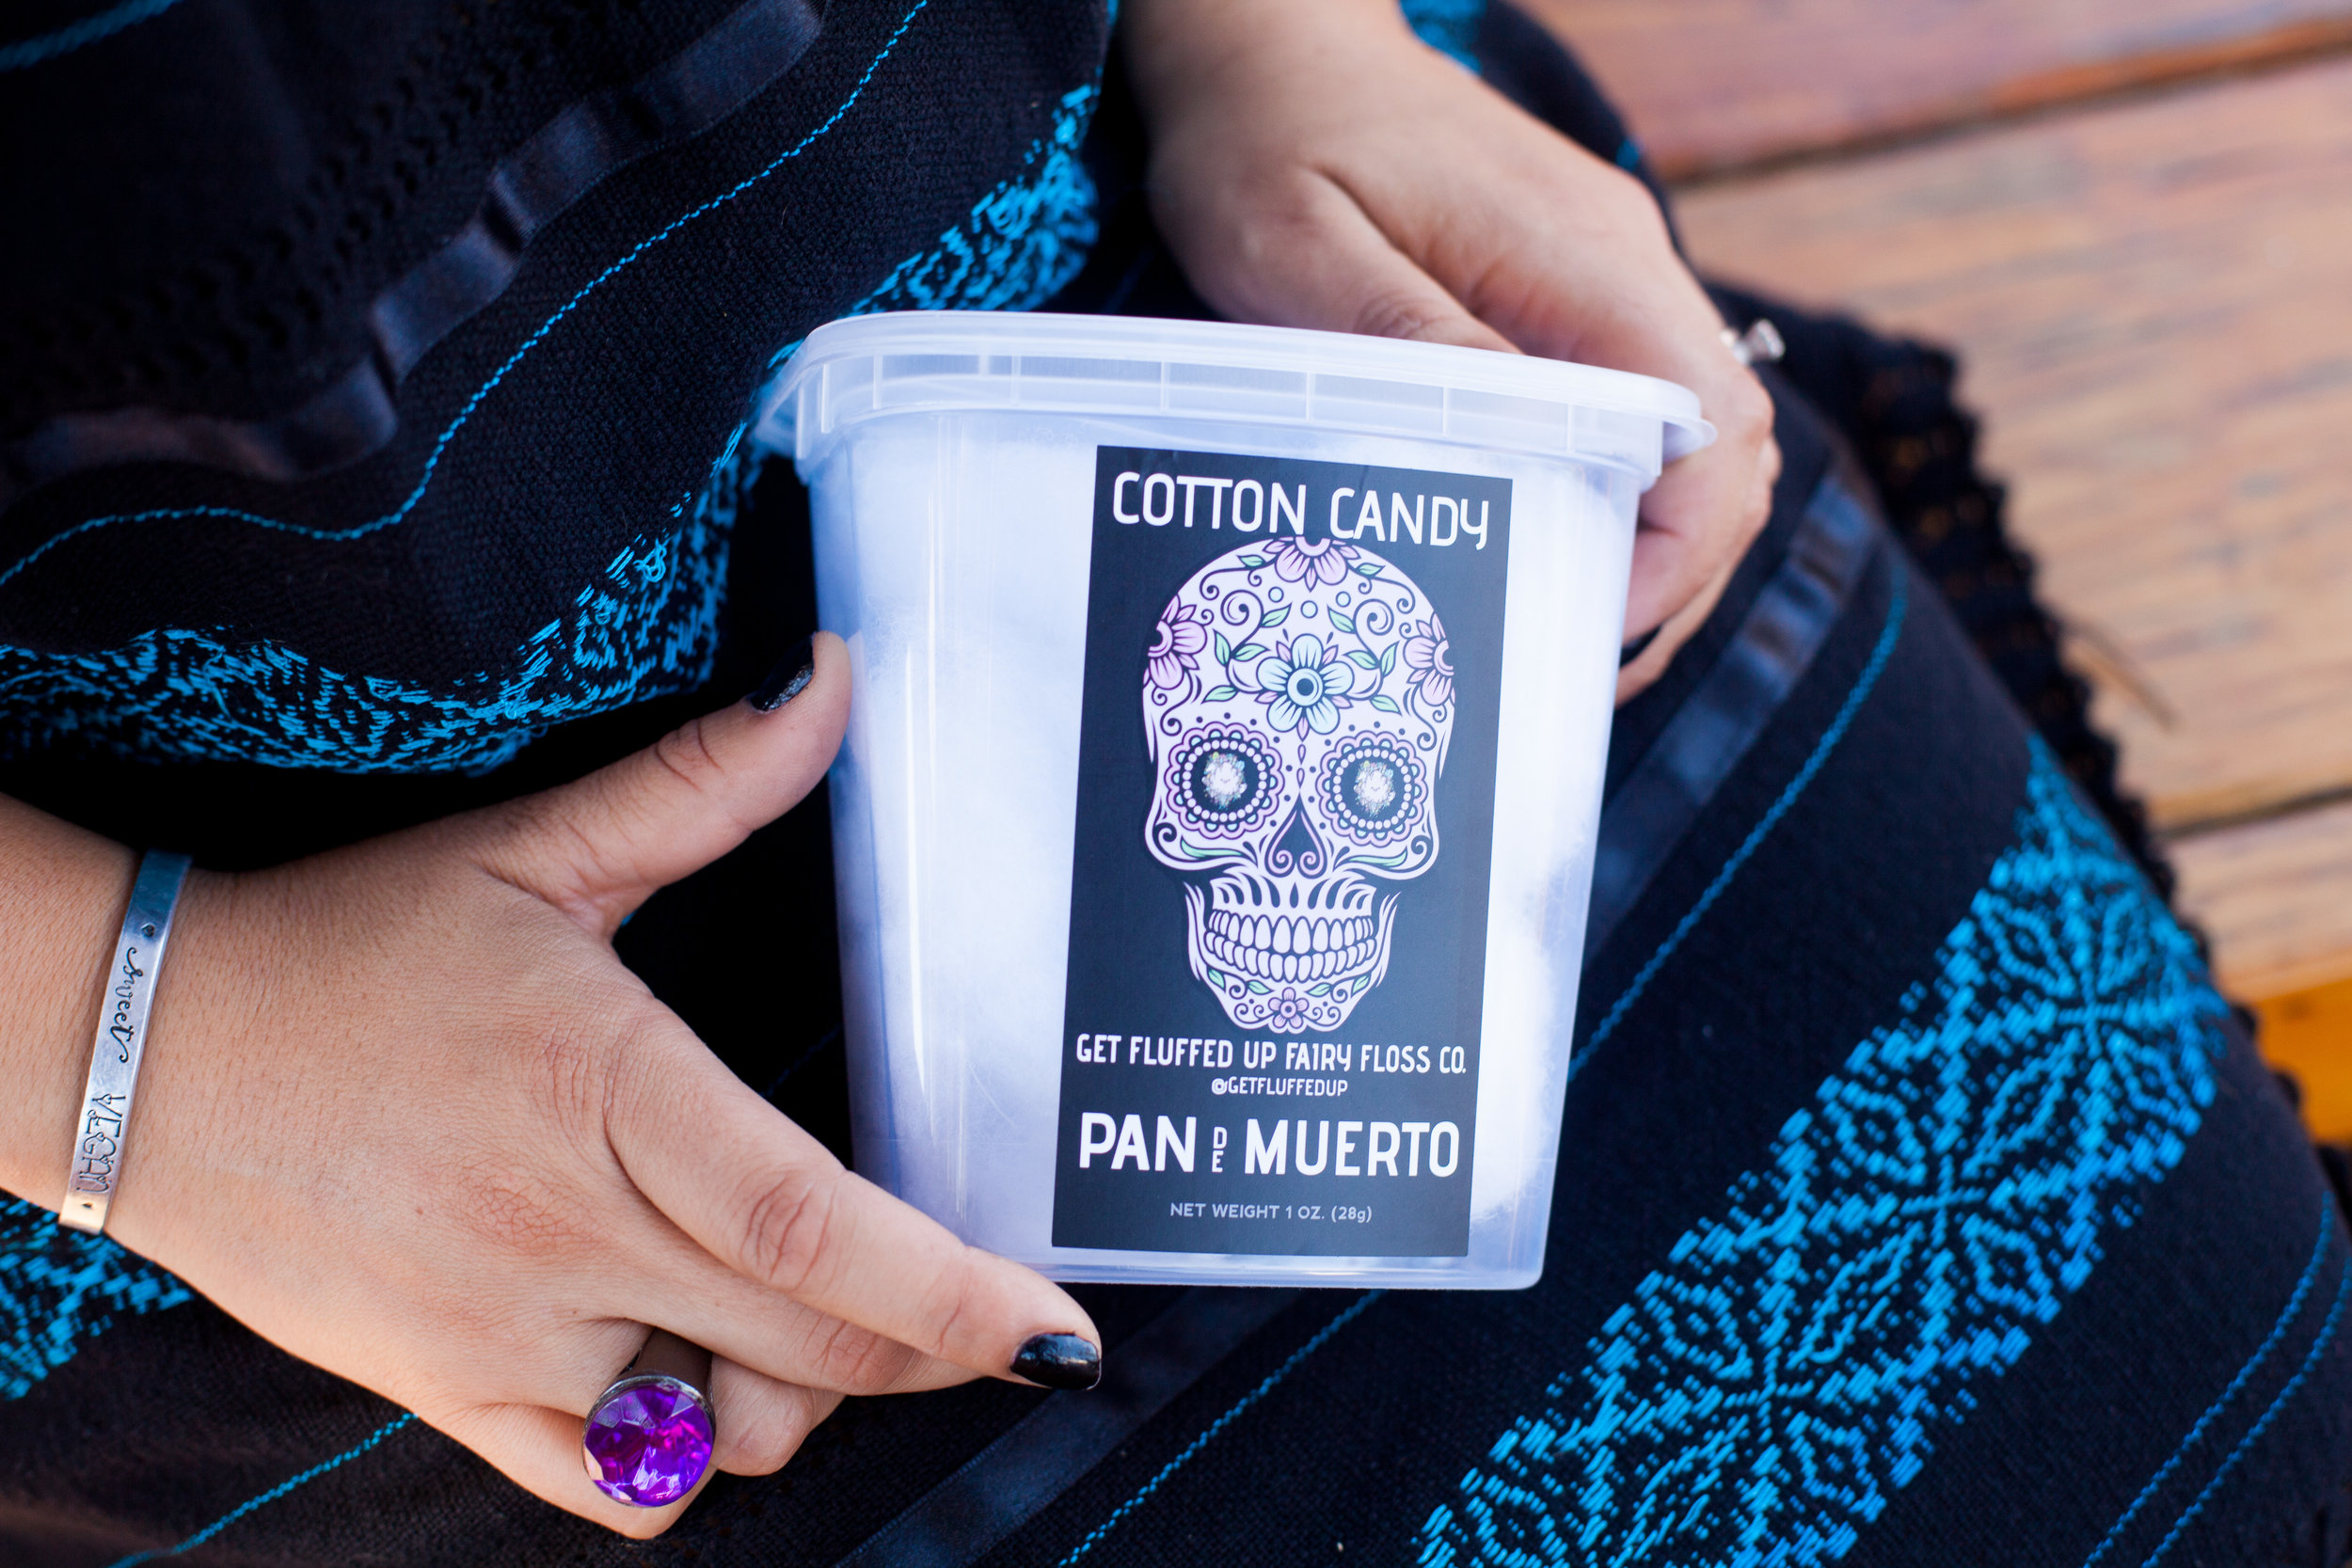 vegan-cotton-candypan-de-muertos-fairy-floss-get-fluffed-7